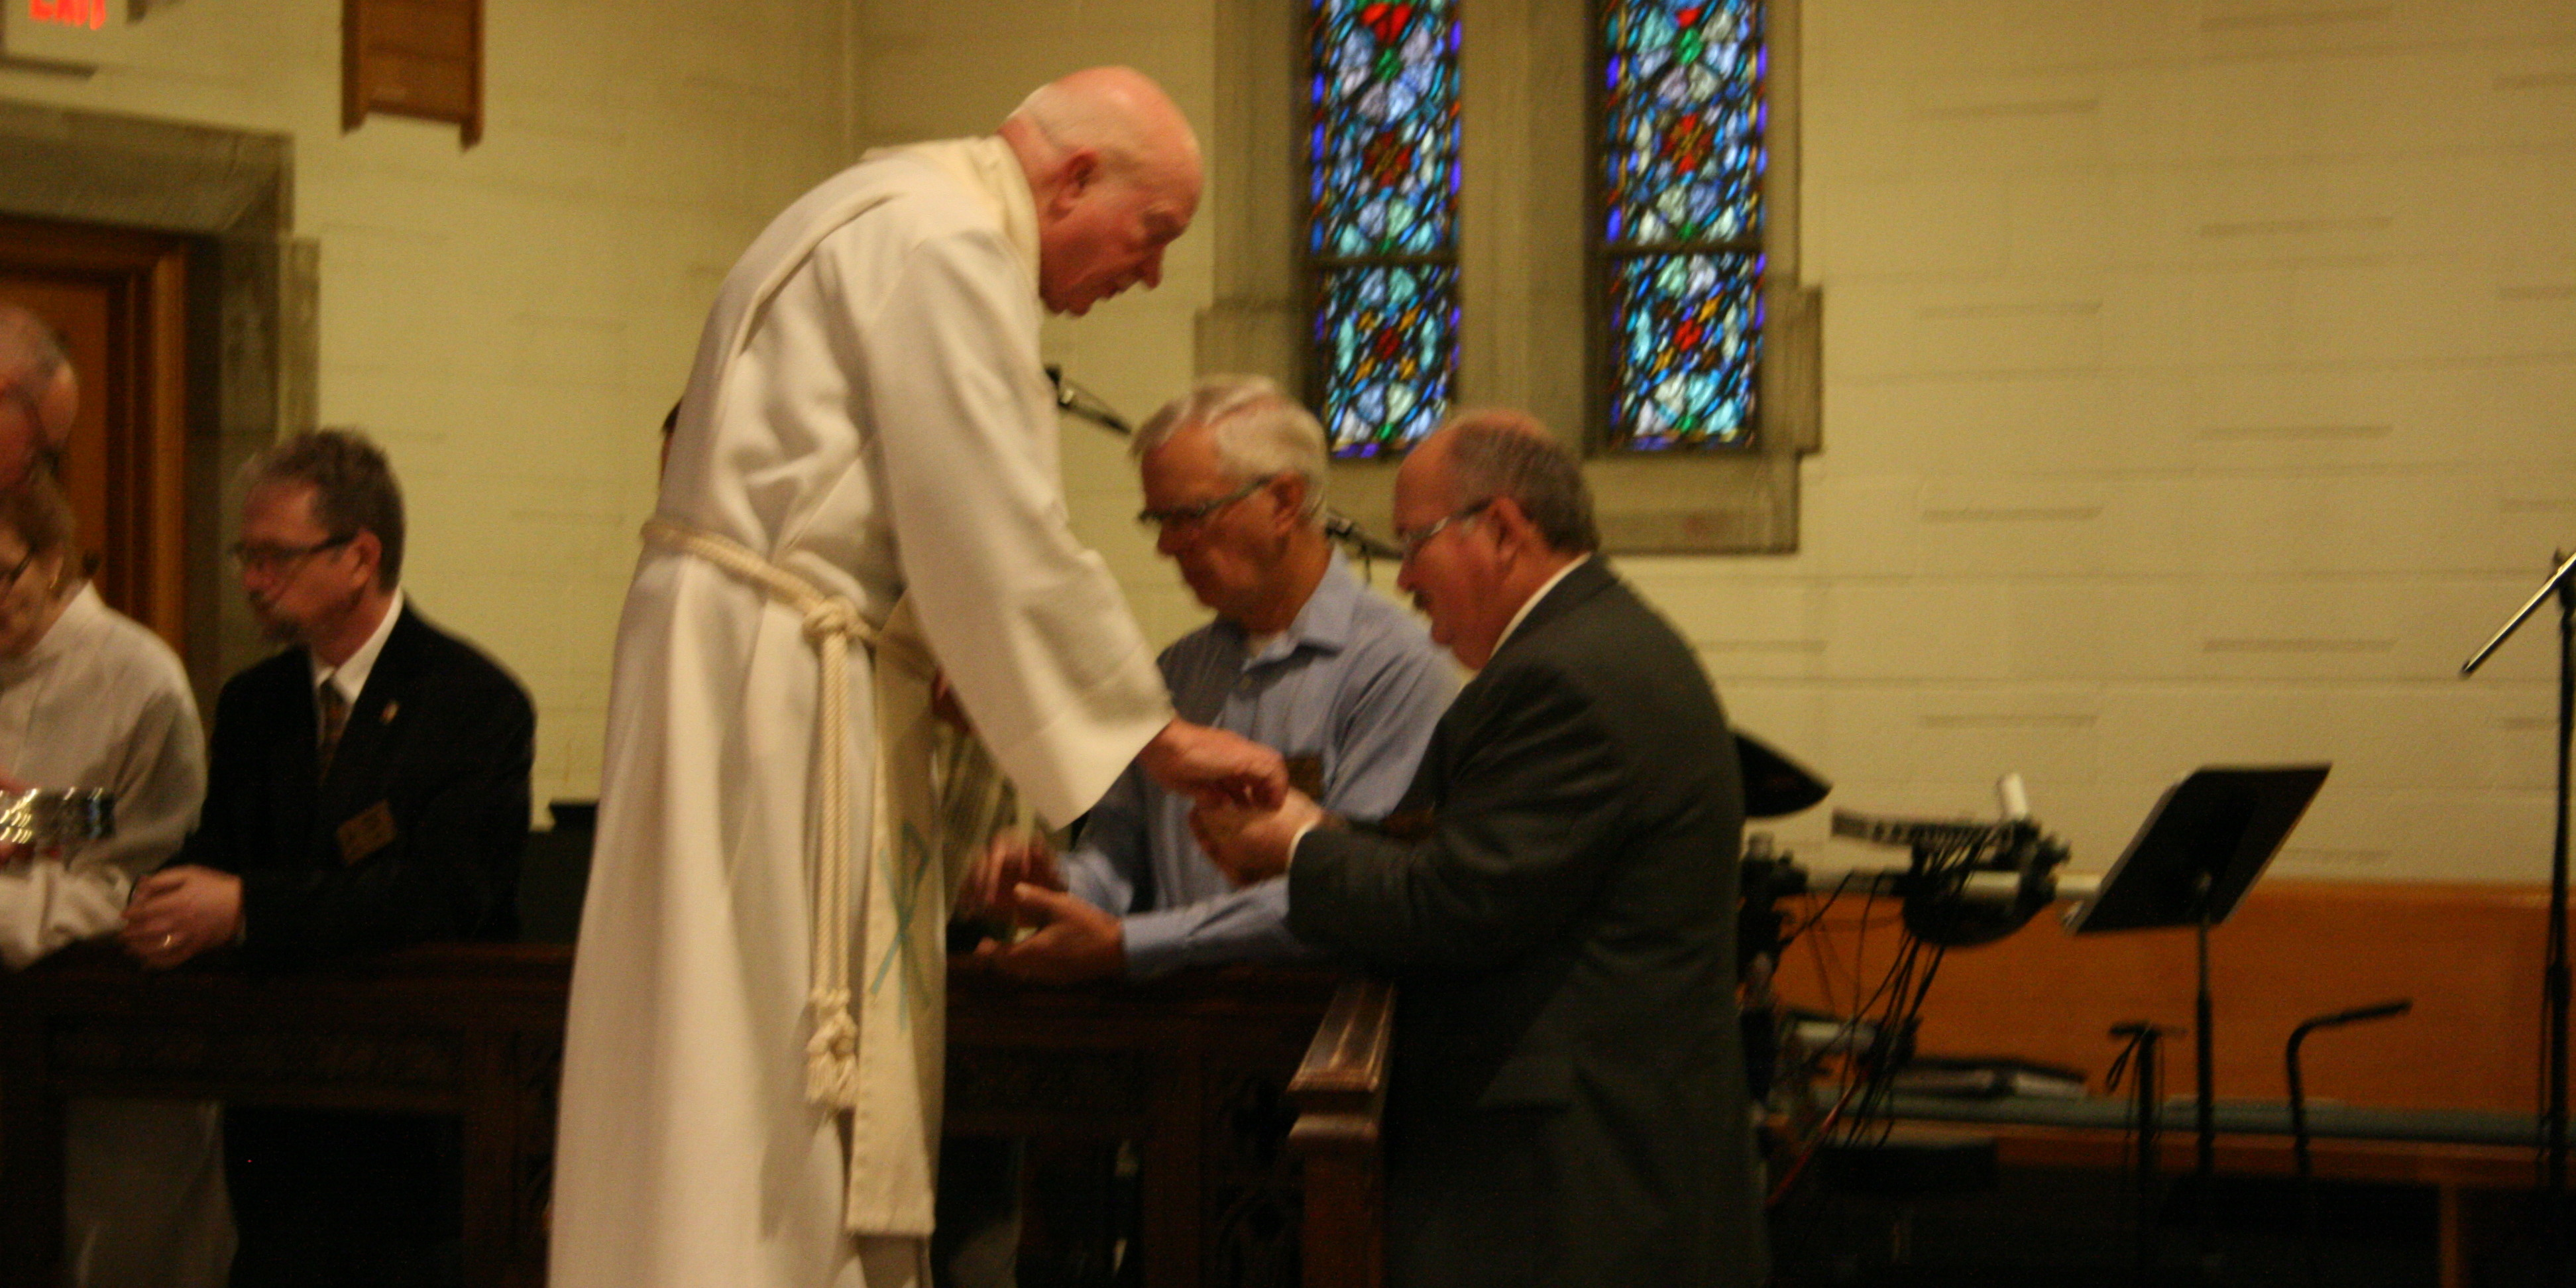 Communion at the Rail during Traditional Services